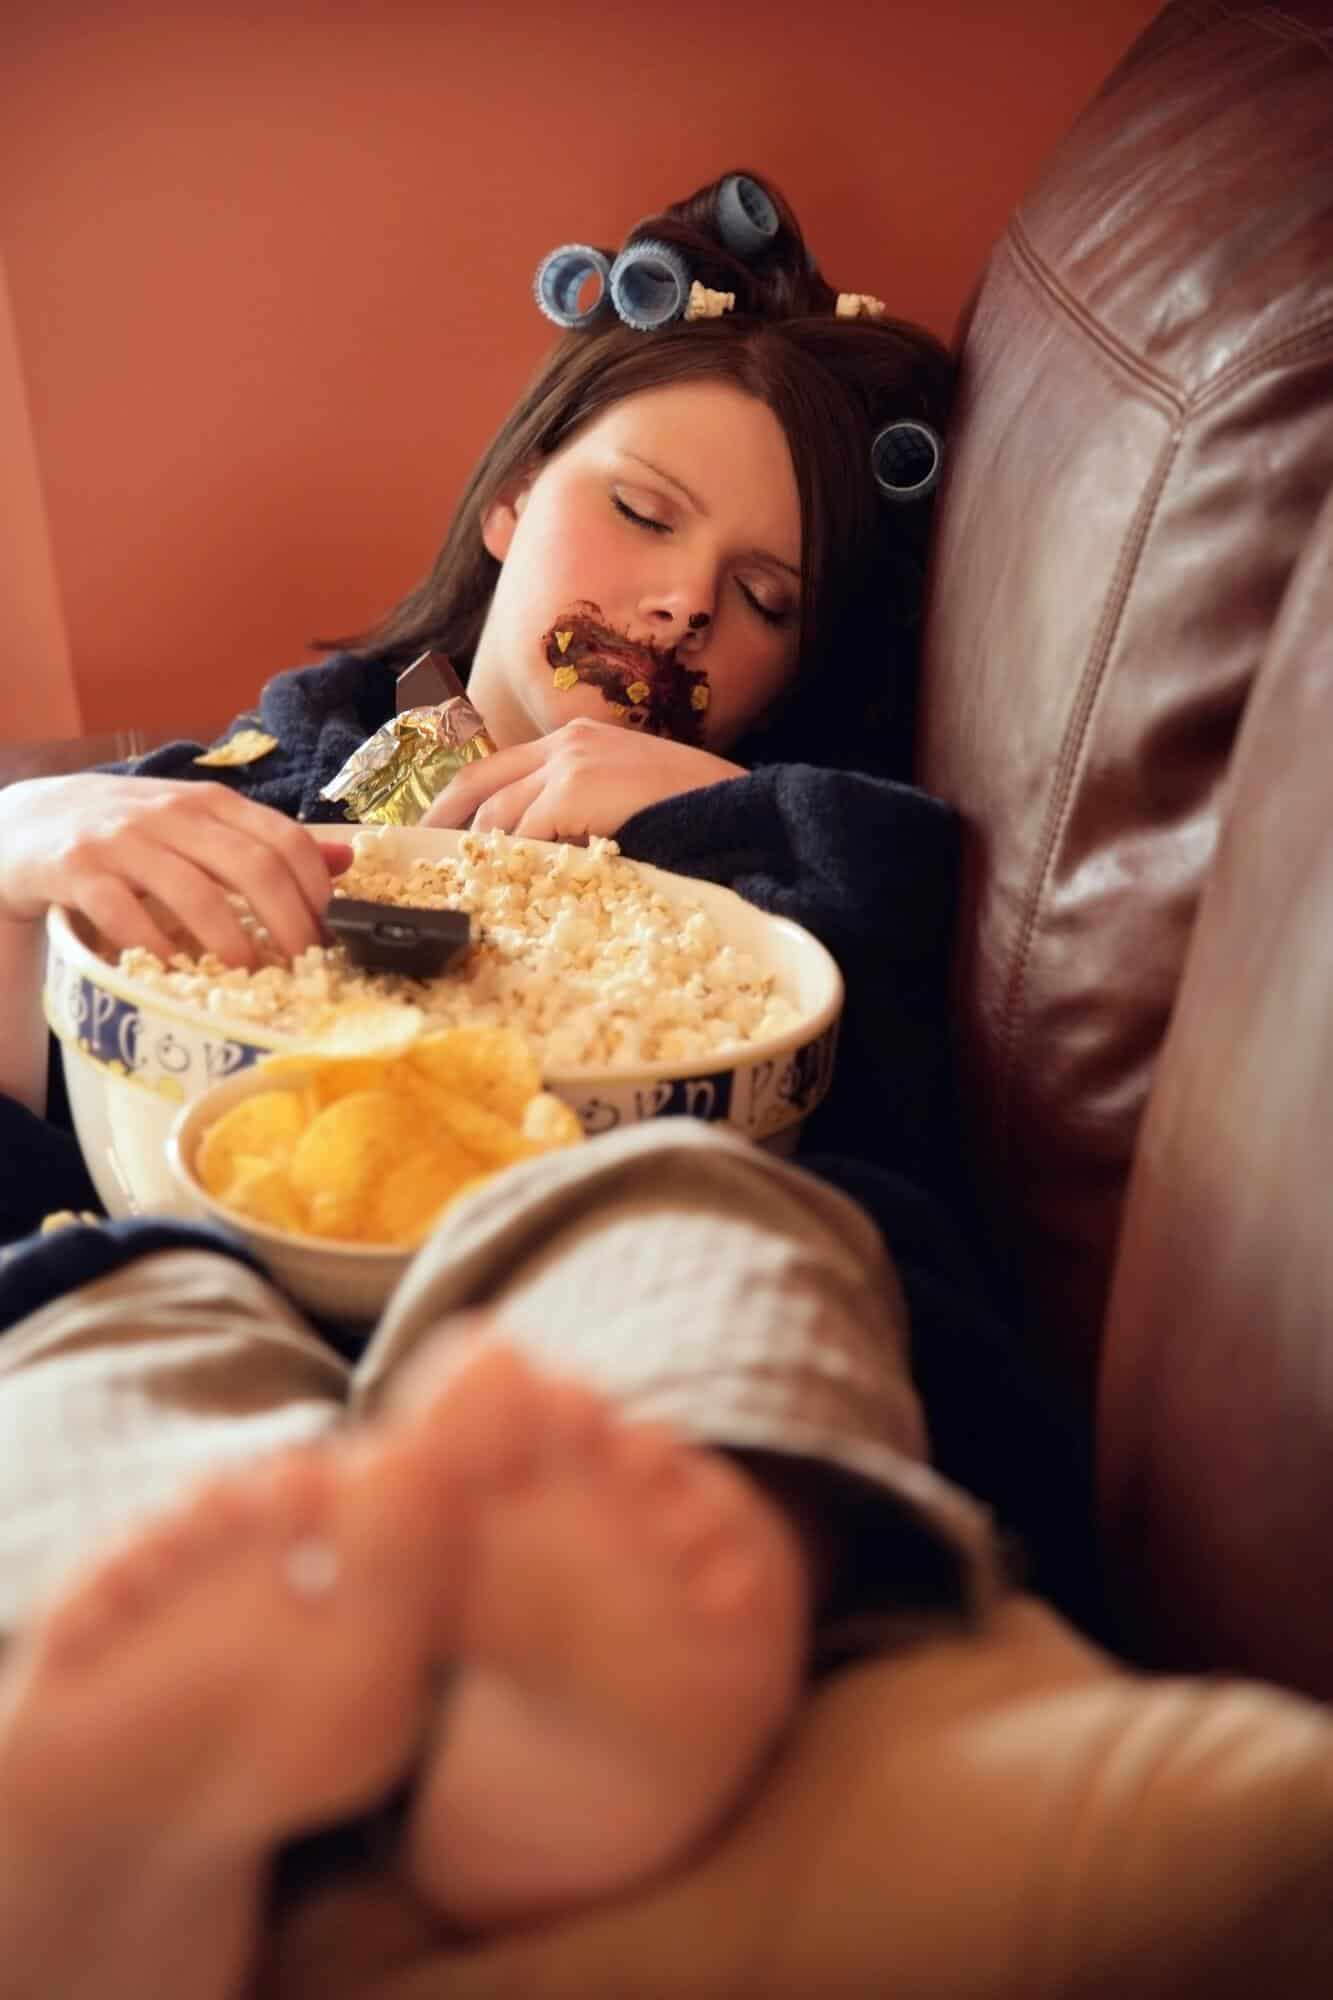 Emotional eating leads to unhealthy night eating habits